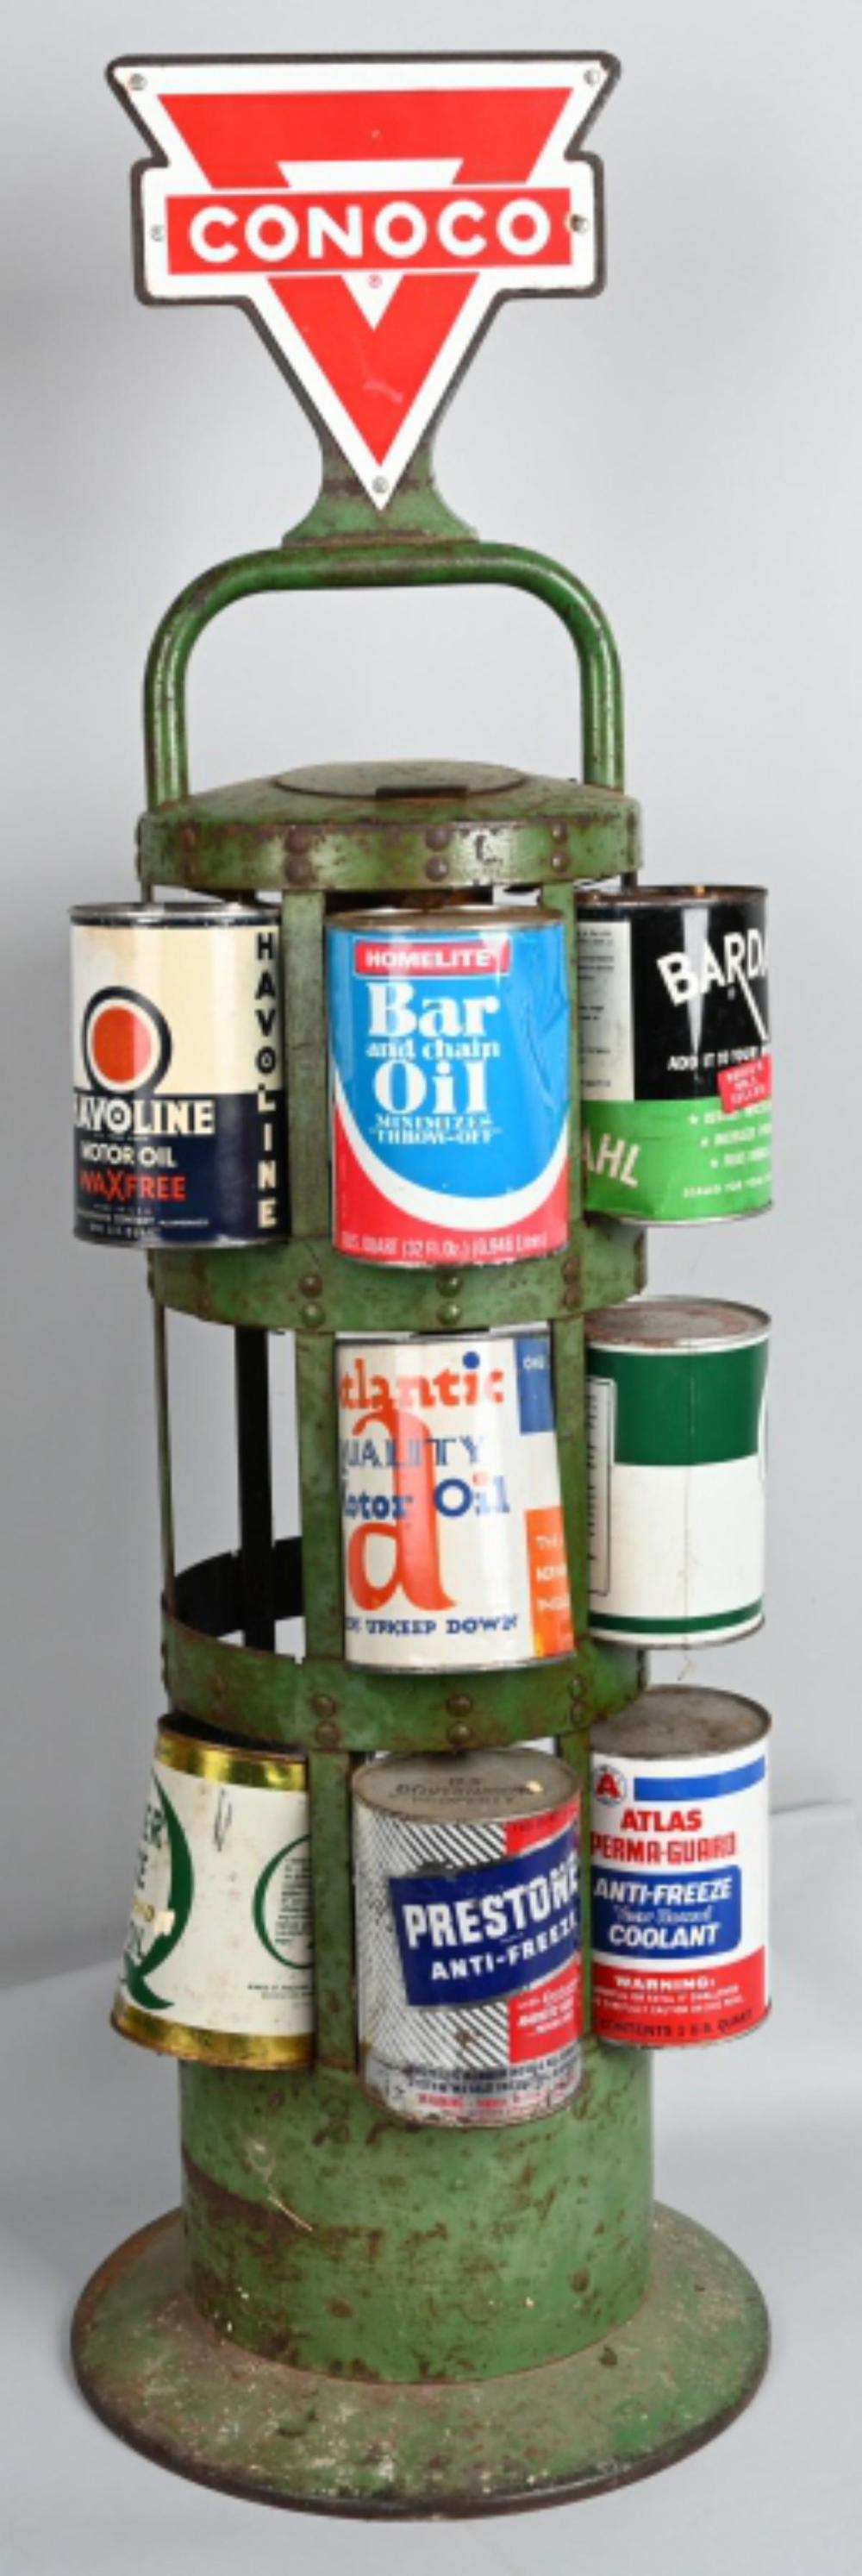 Conoco Oil Can Service Station Display Rack